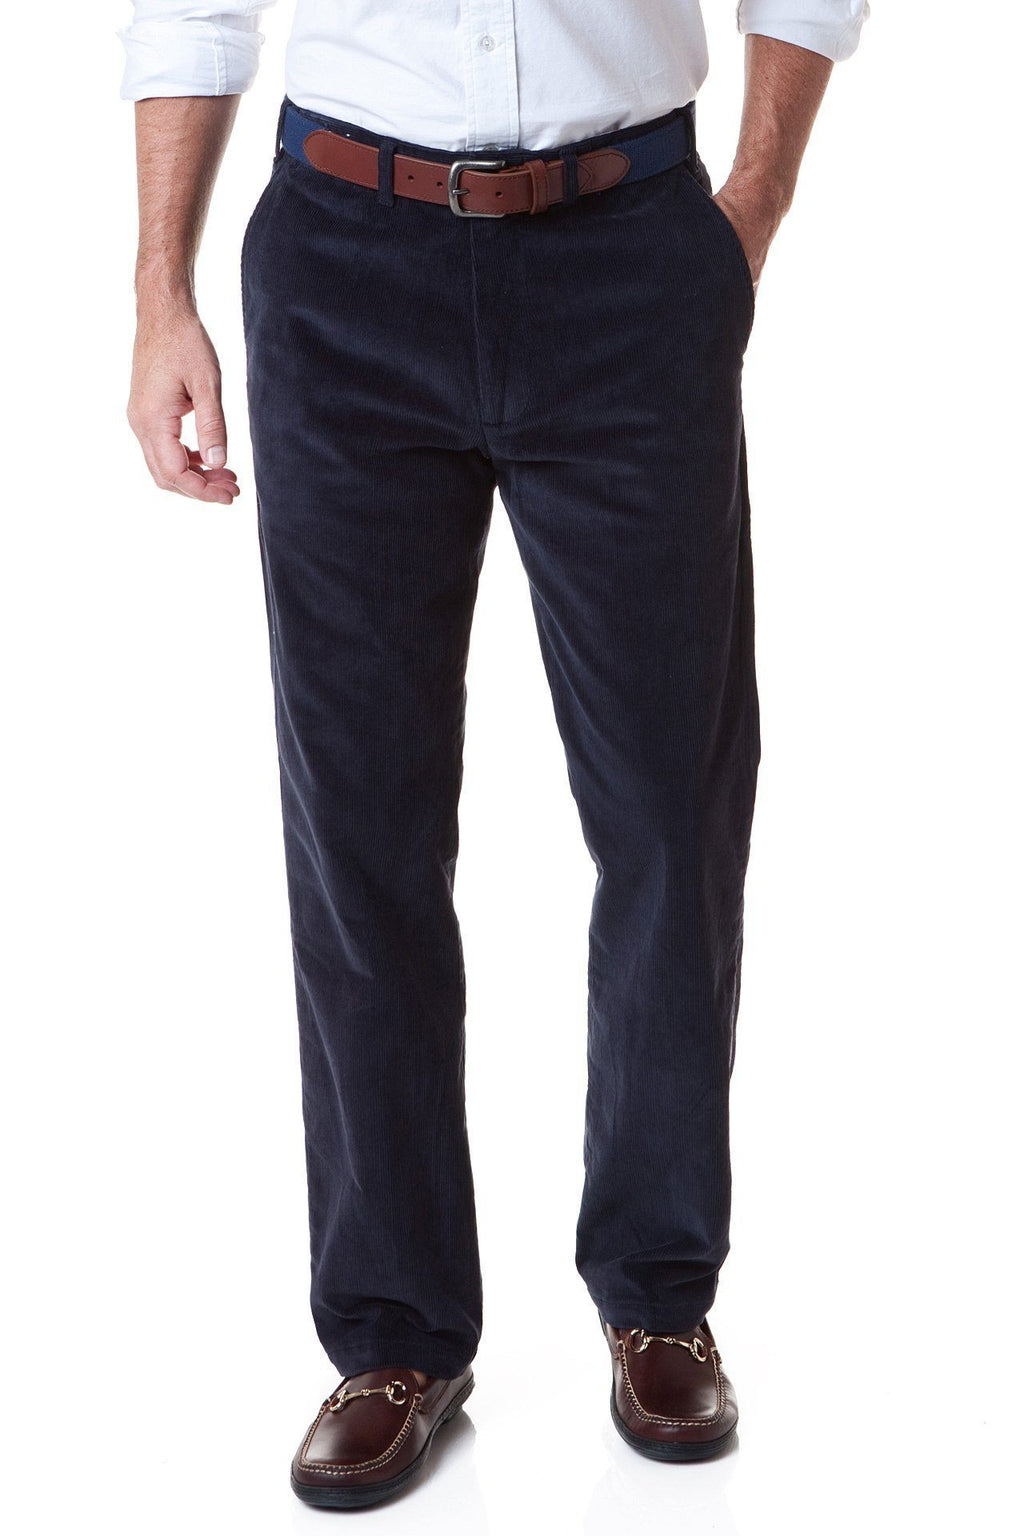 Beachcomber Stretch Corduroy Pant Nantucket Navy - MENS PANTS - Castaway Nantucket Island